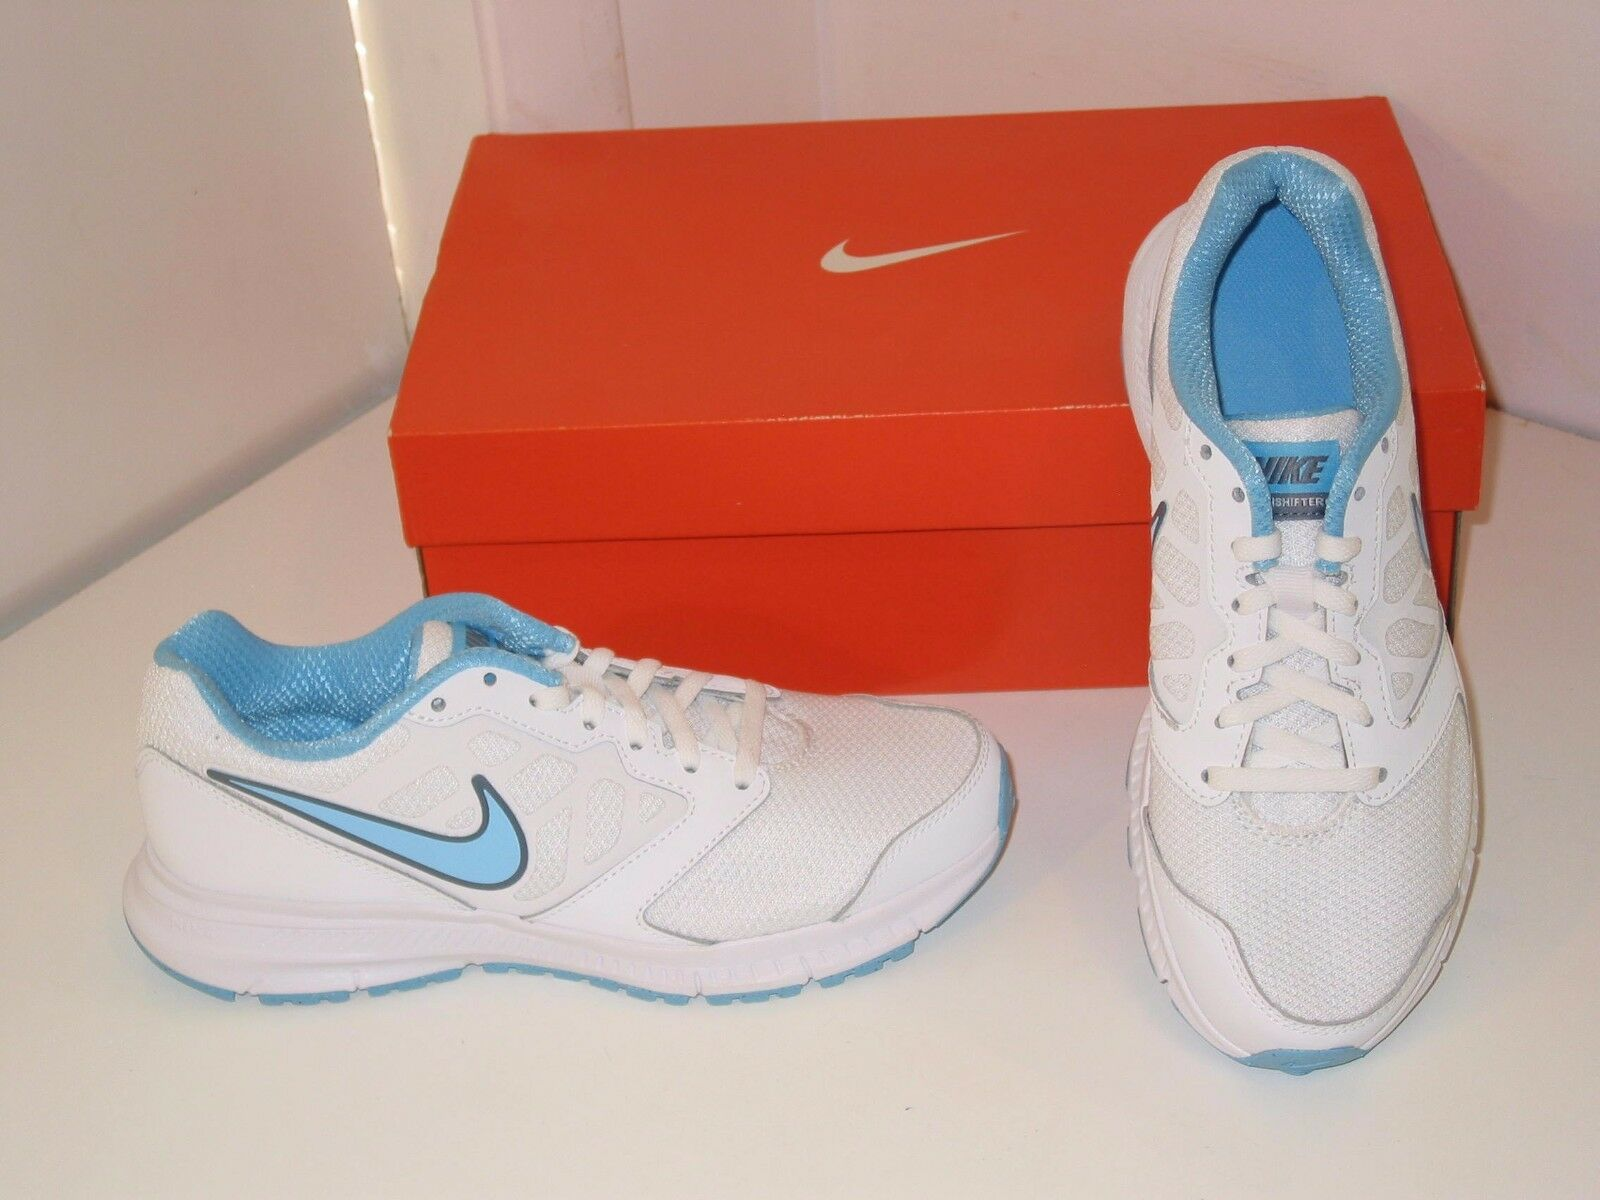 Nike Downshifter 6 Running Trainer White Blue Mesh Sneakers Shoes Womens 7.5